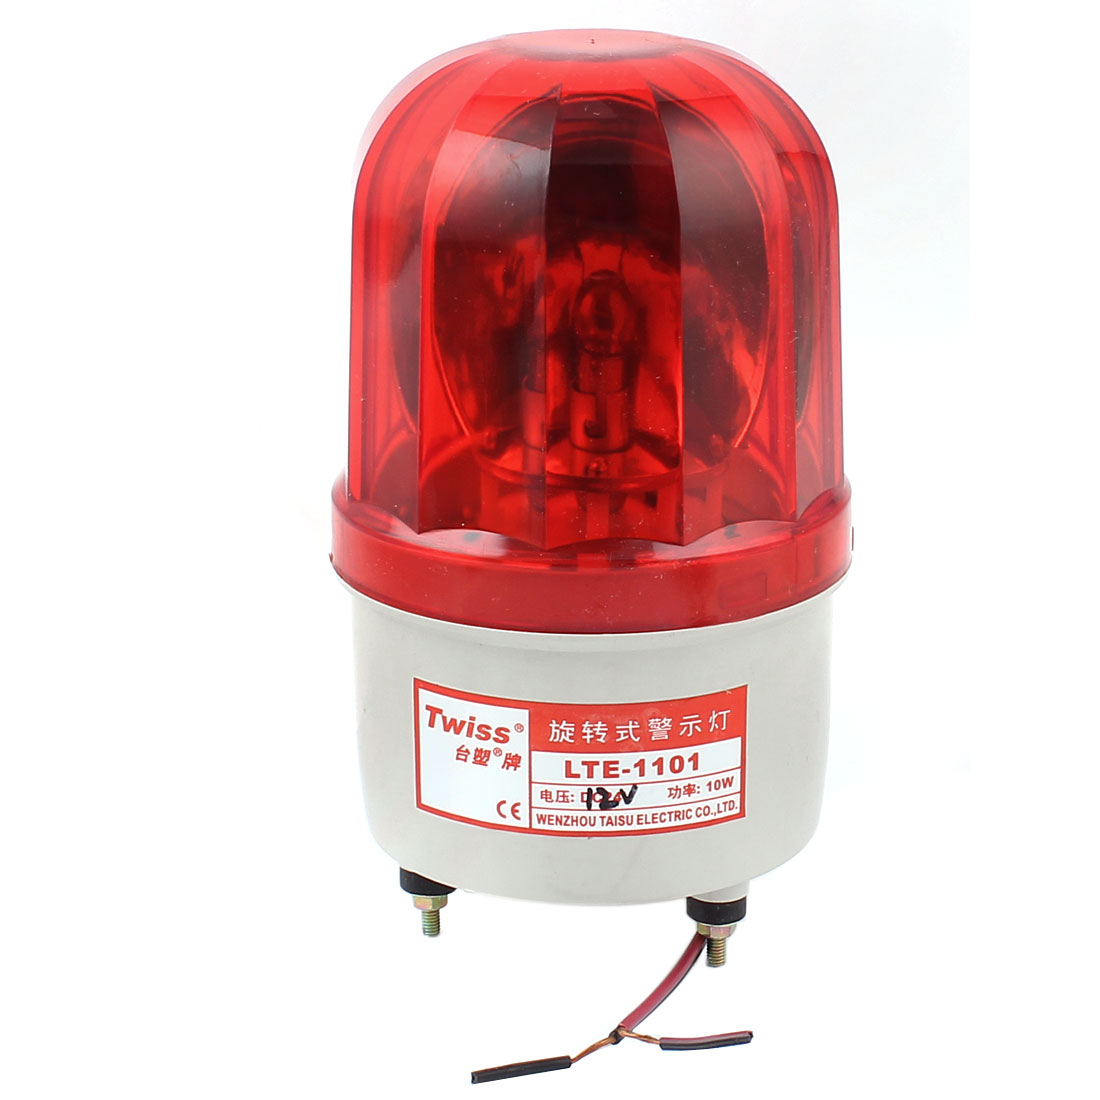 DC 12V Industrial Alarm System Rotating Warning Light Lamp Red